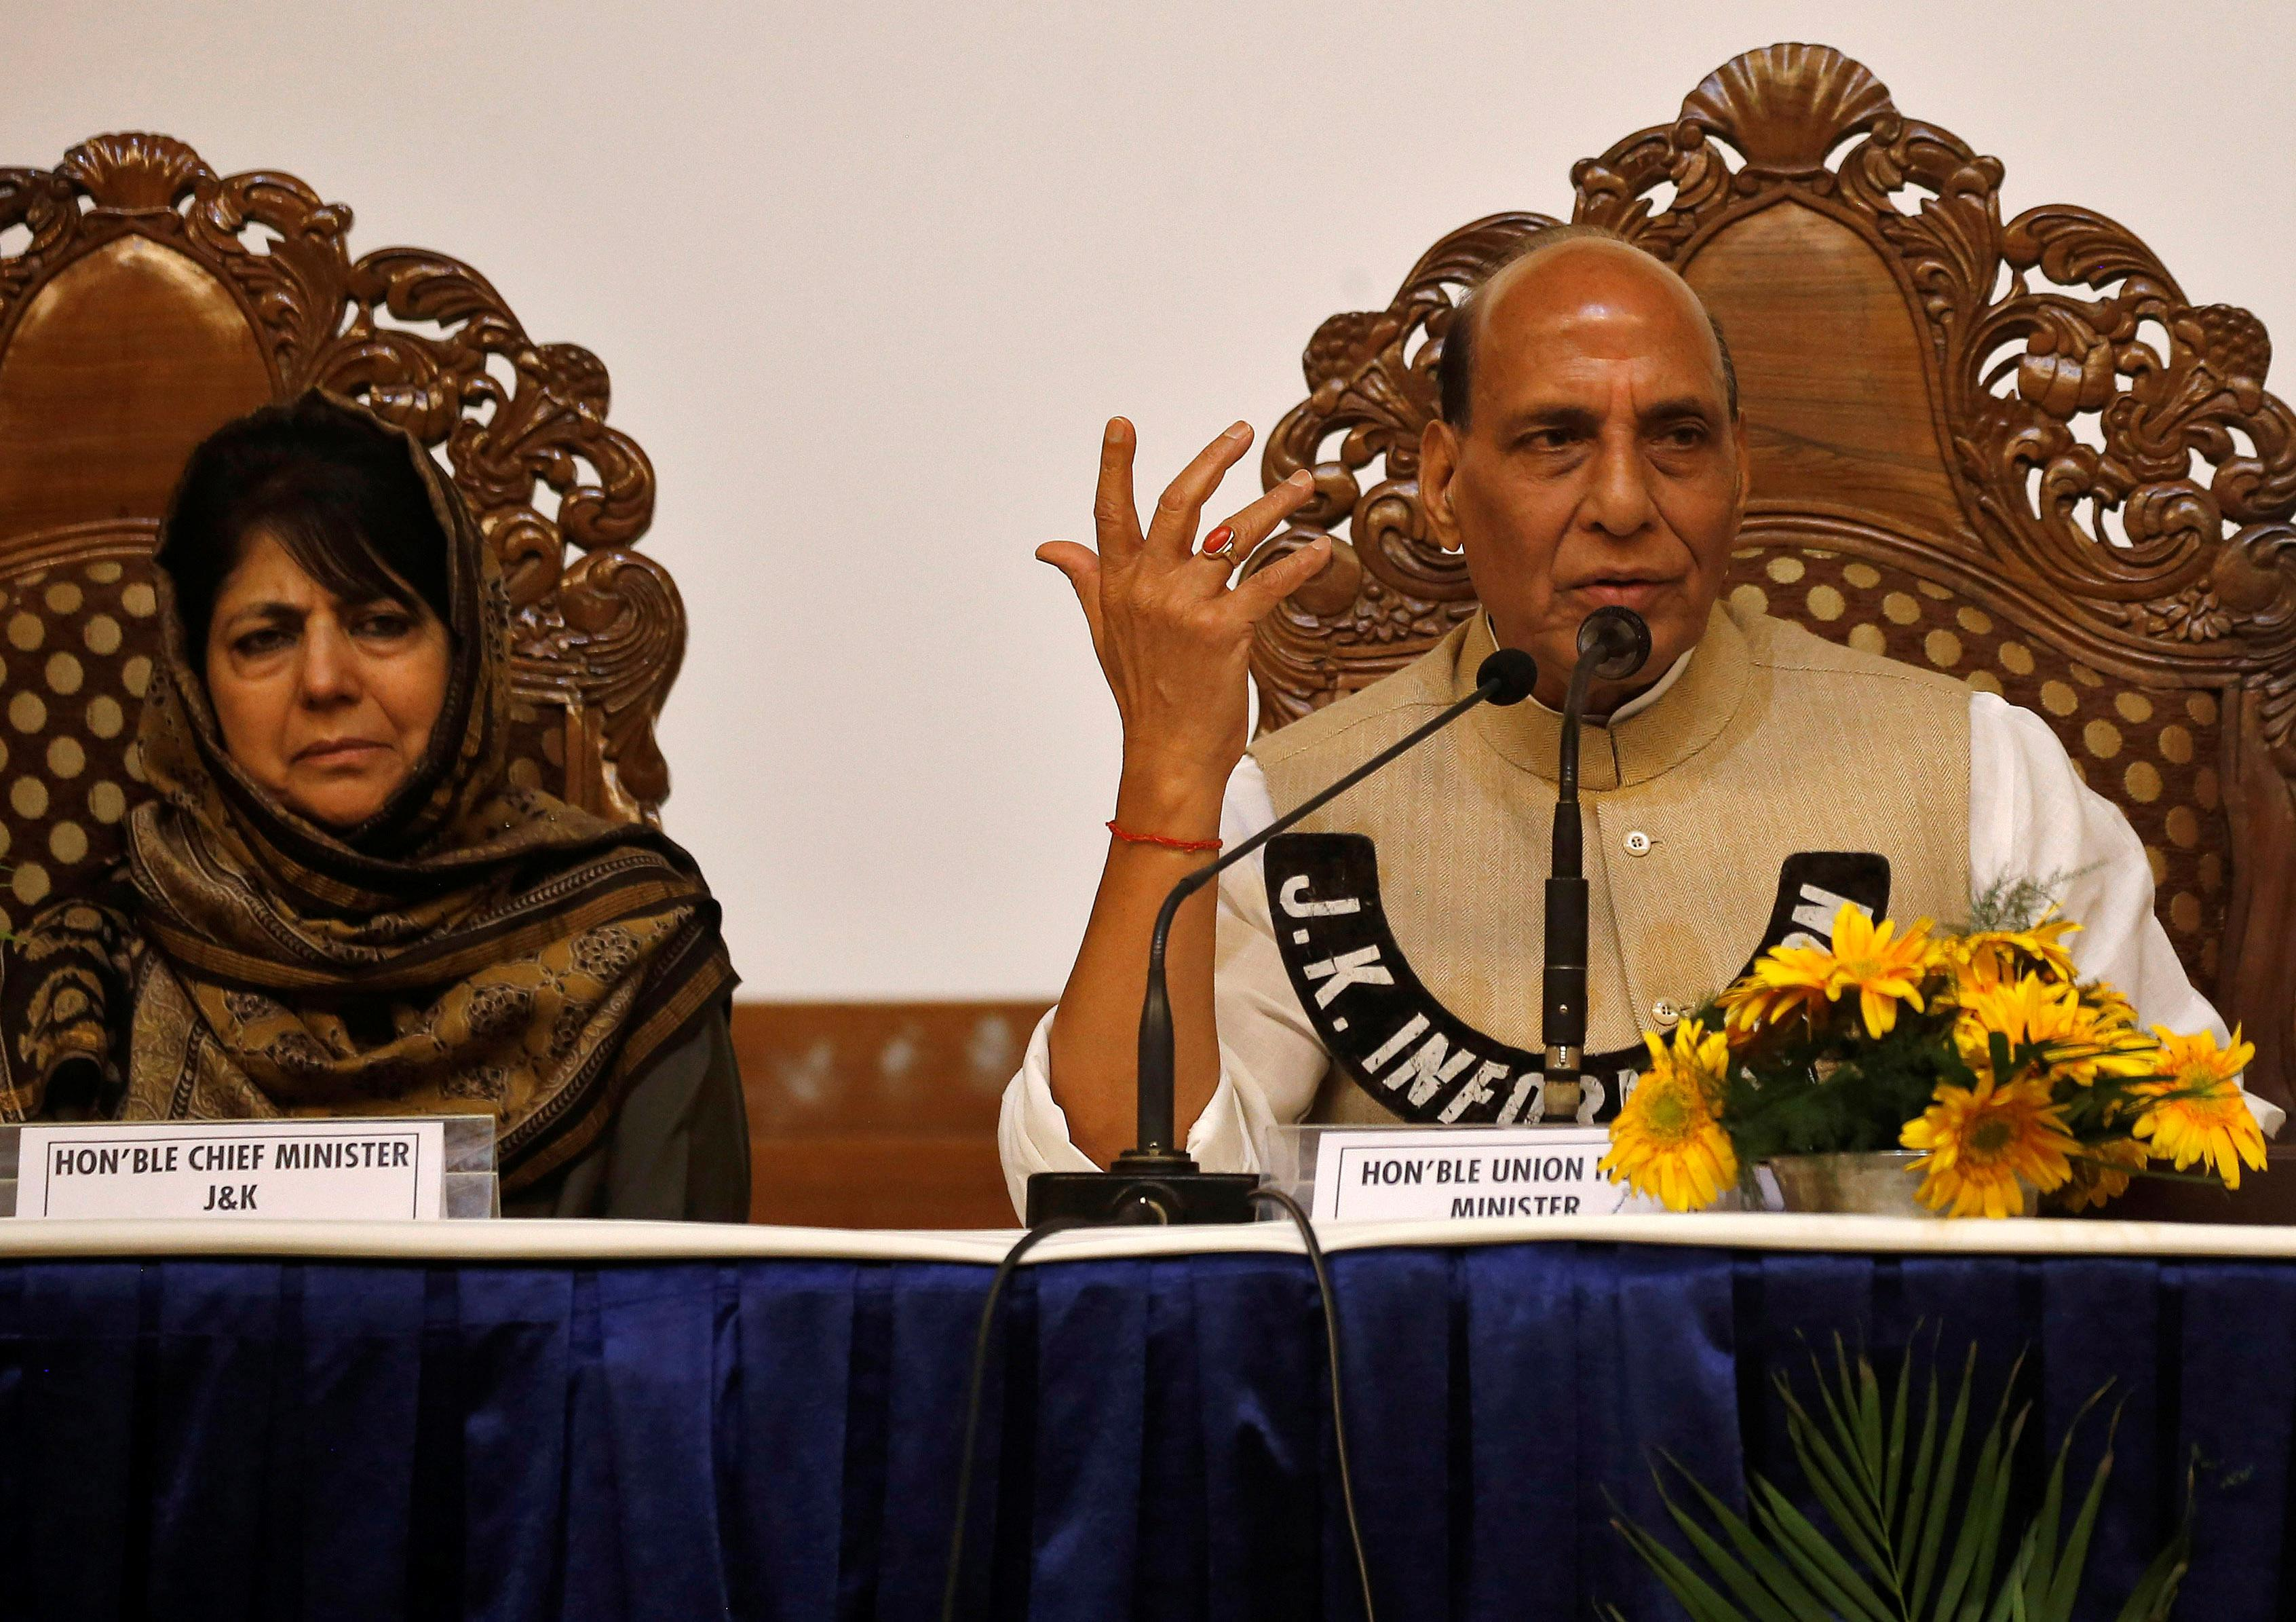 Jammu and Kashmir Chief Minister Mehbooba Mufti and India's Home Minister Rajnath Singh attend a news conference in Srinagar, June 7, 2018. Danish Ismail